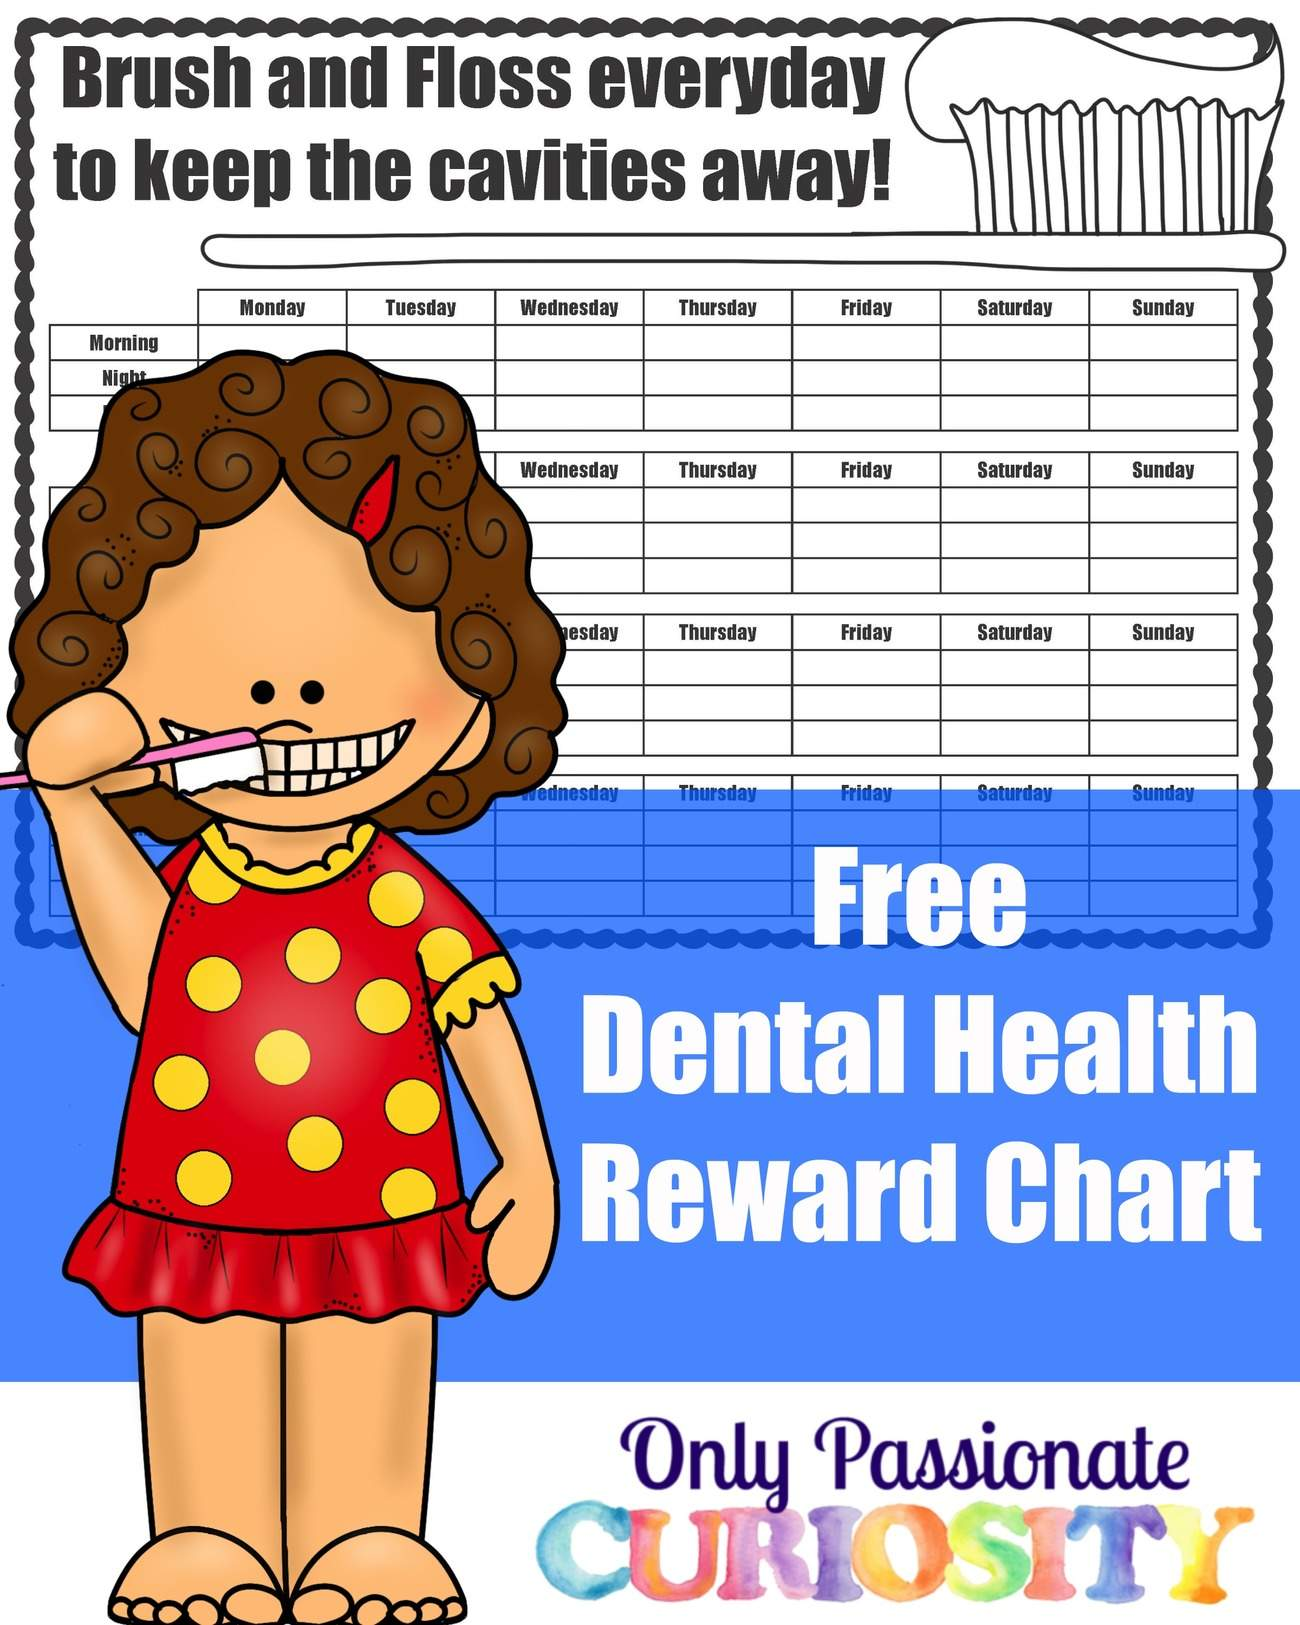 Encouraging Good Dental Hygiene in Kids